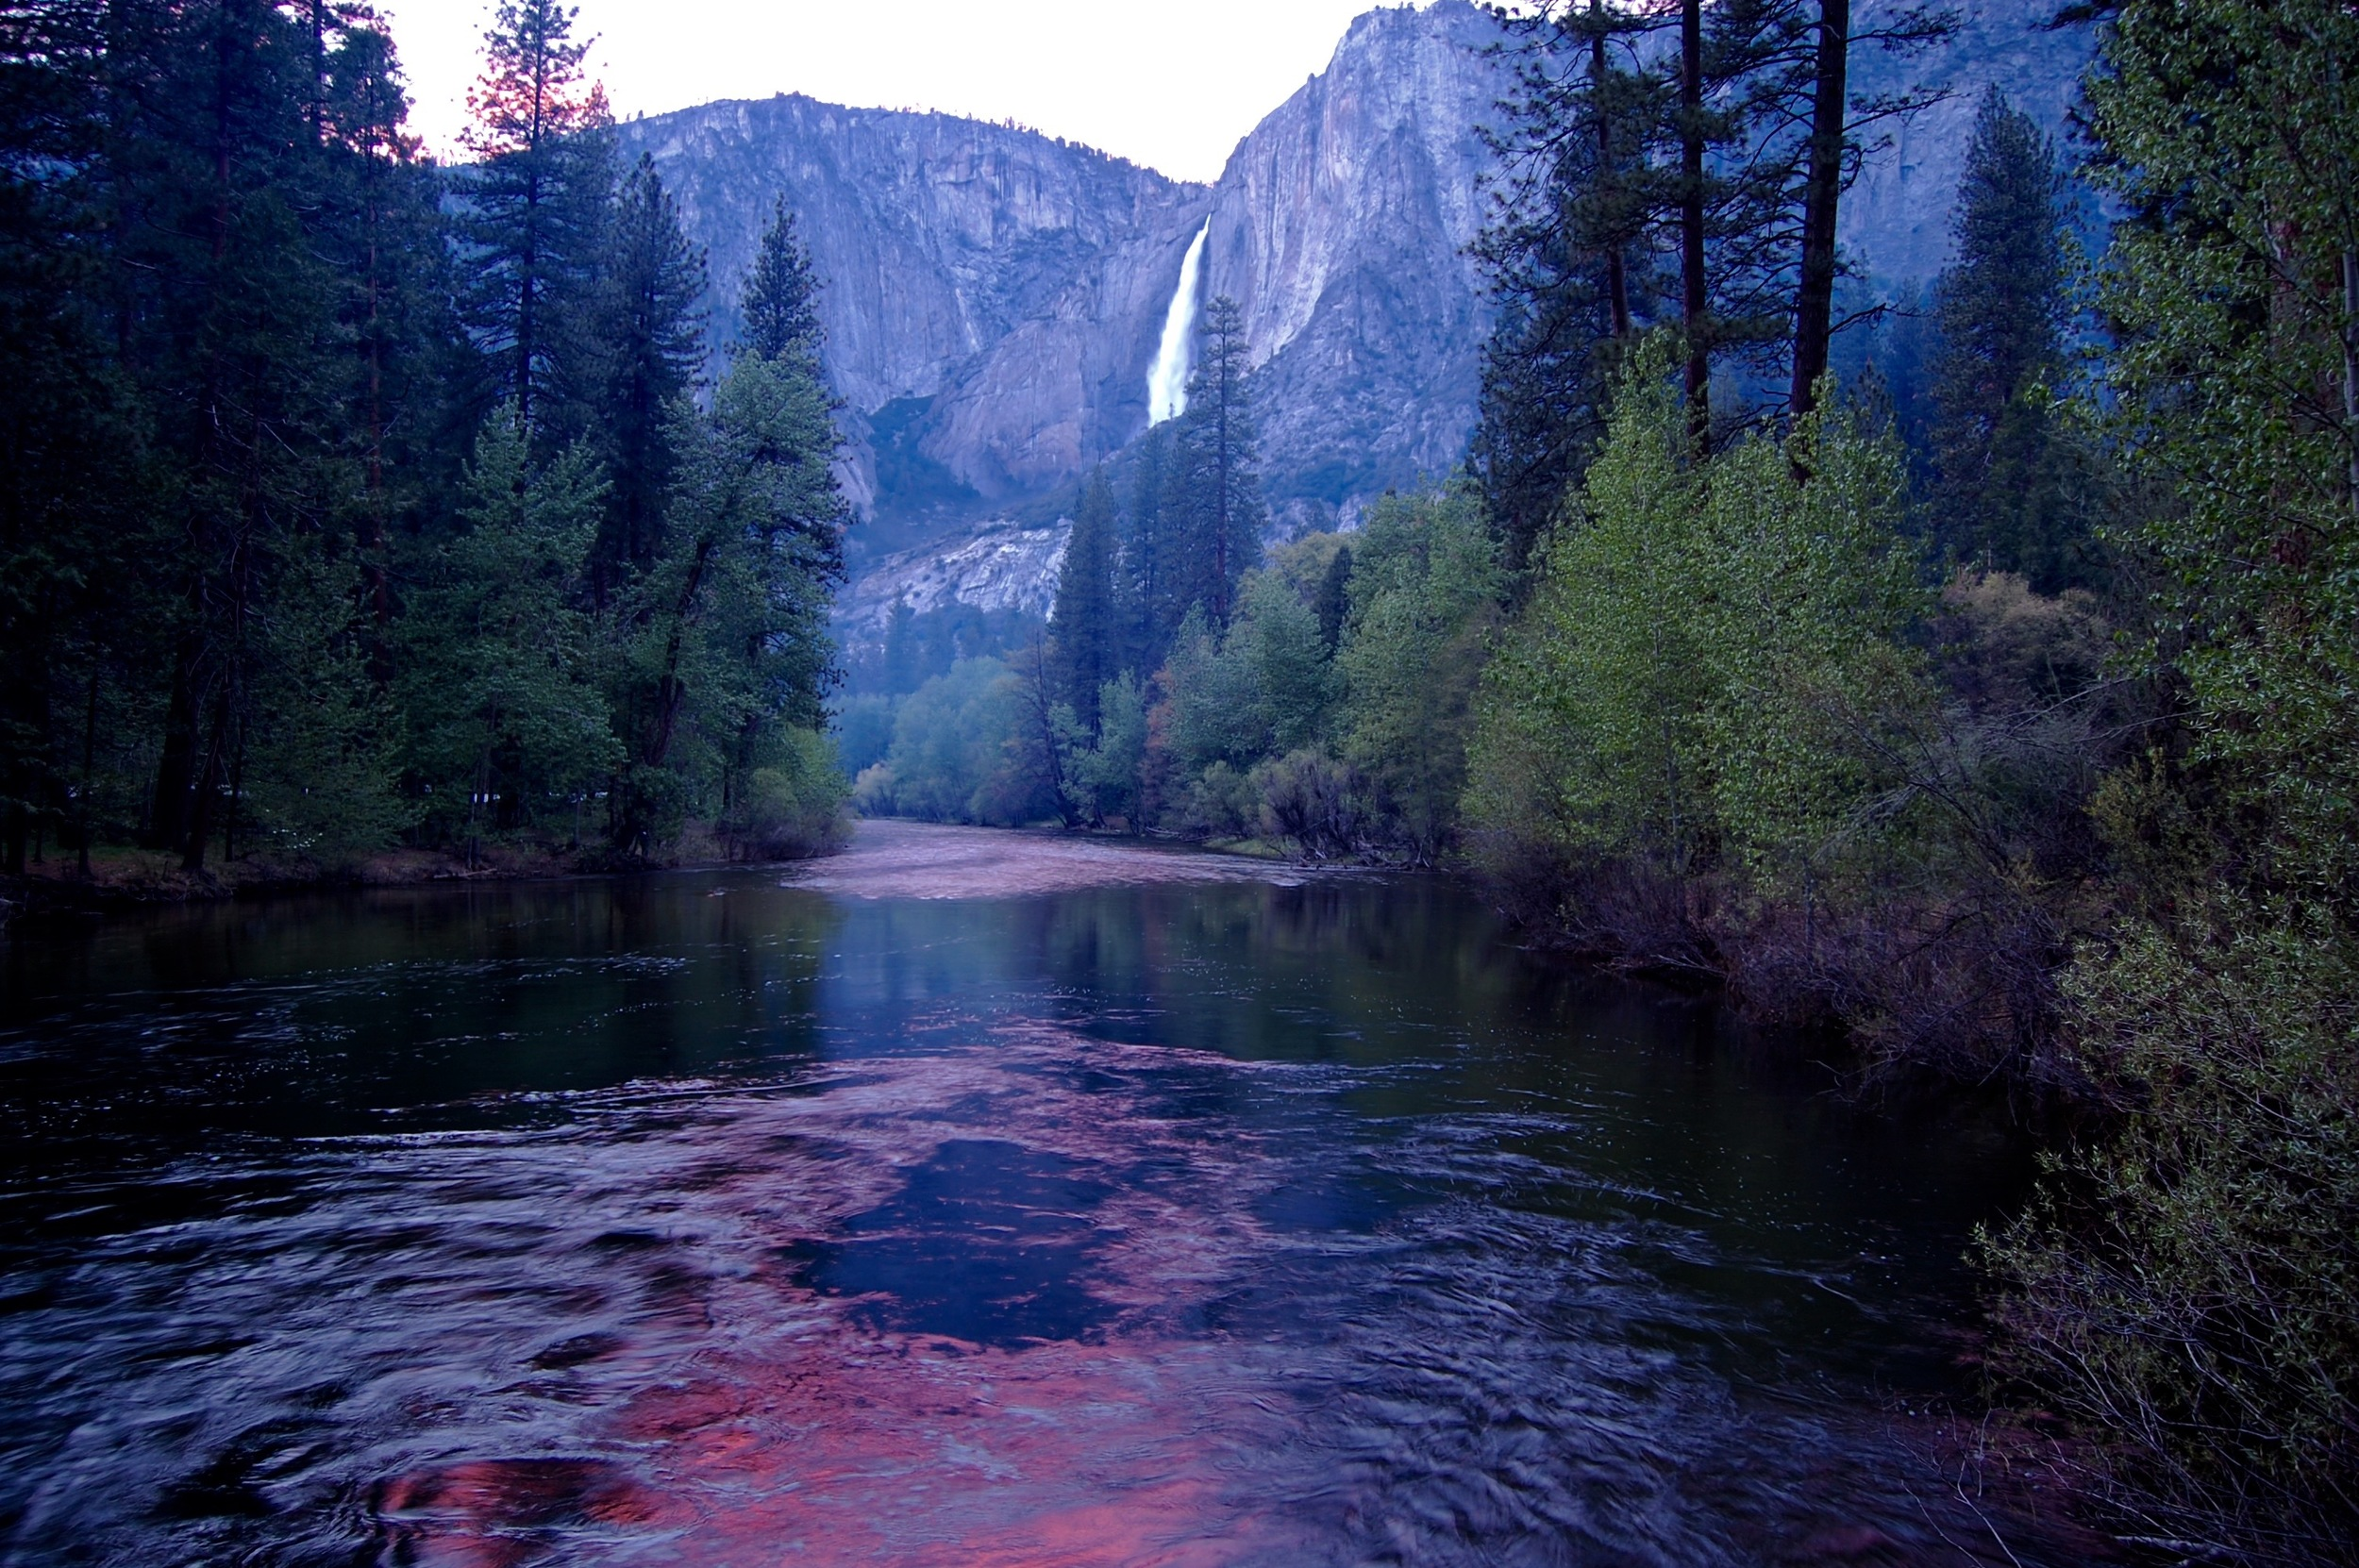 Yosemite National Park, Yosemite Falls at sunset